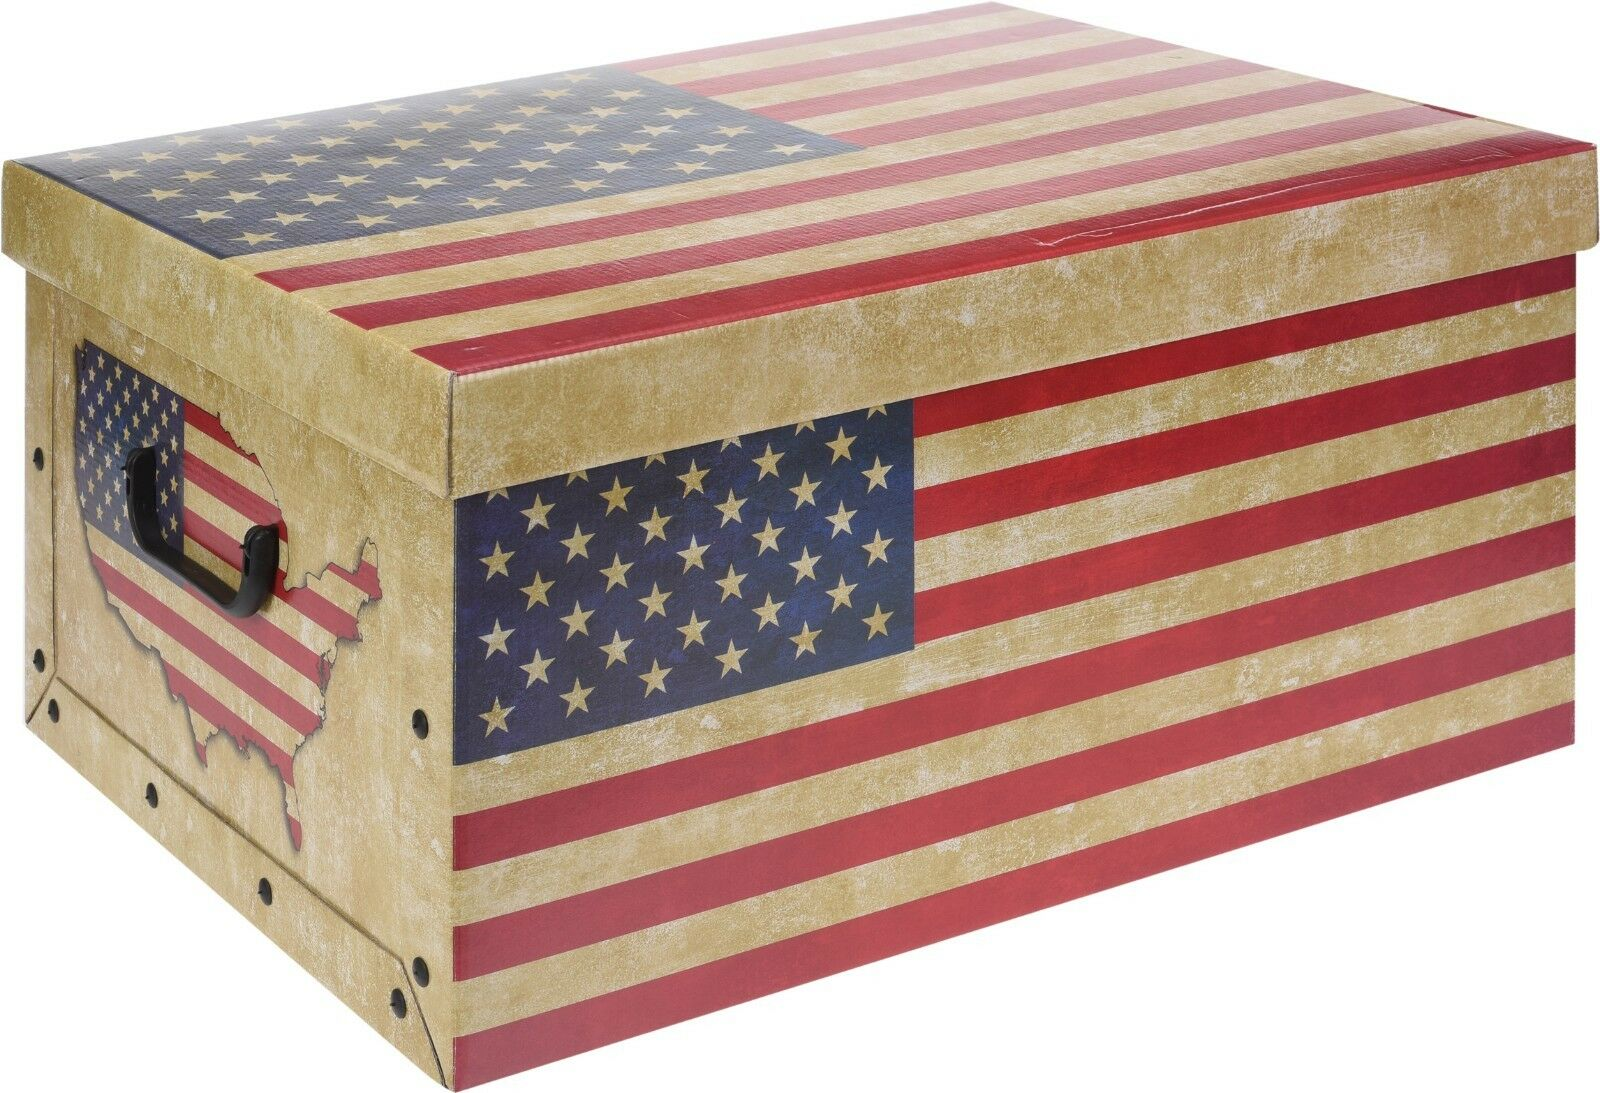 Cardboard Large Storage Boxes With Lid Storage Box Toy Box Handle Union Jack USA